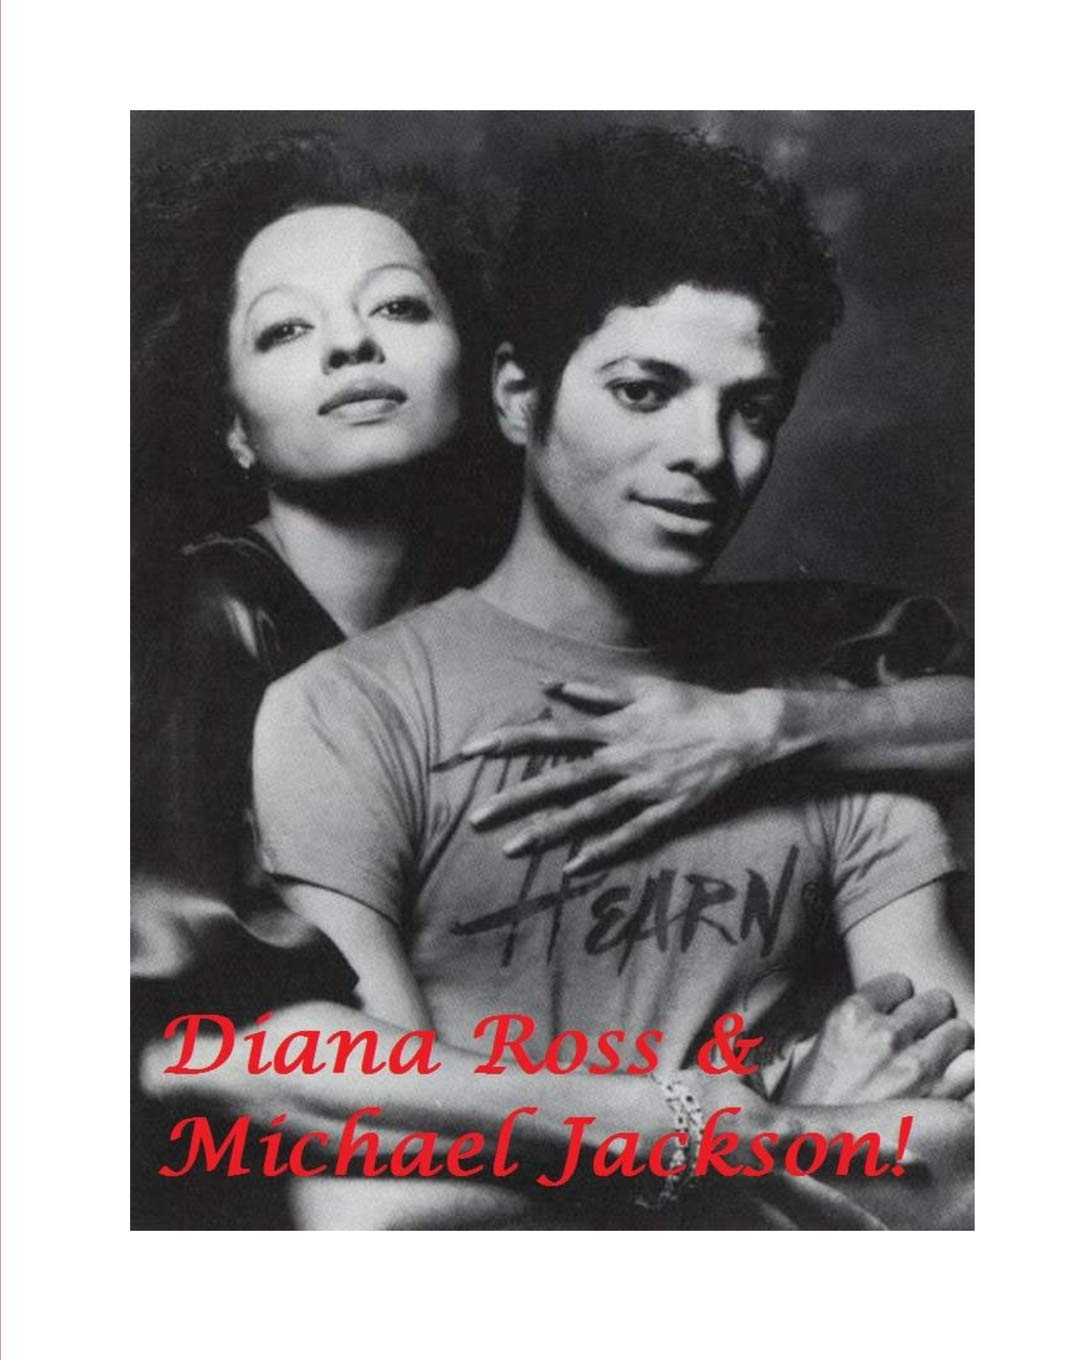 diana ross and michael jackson paterson diane 9780464137030 amazon com books diana ross and michael jackson